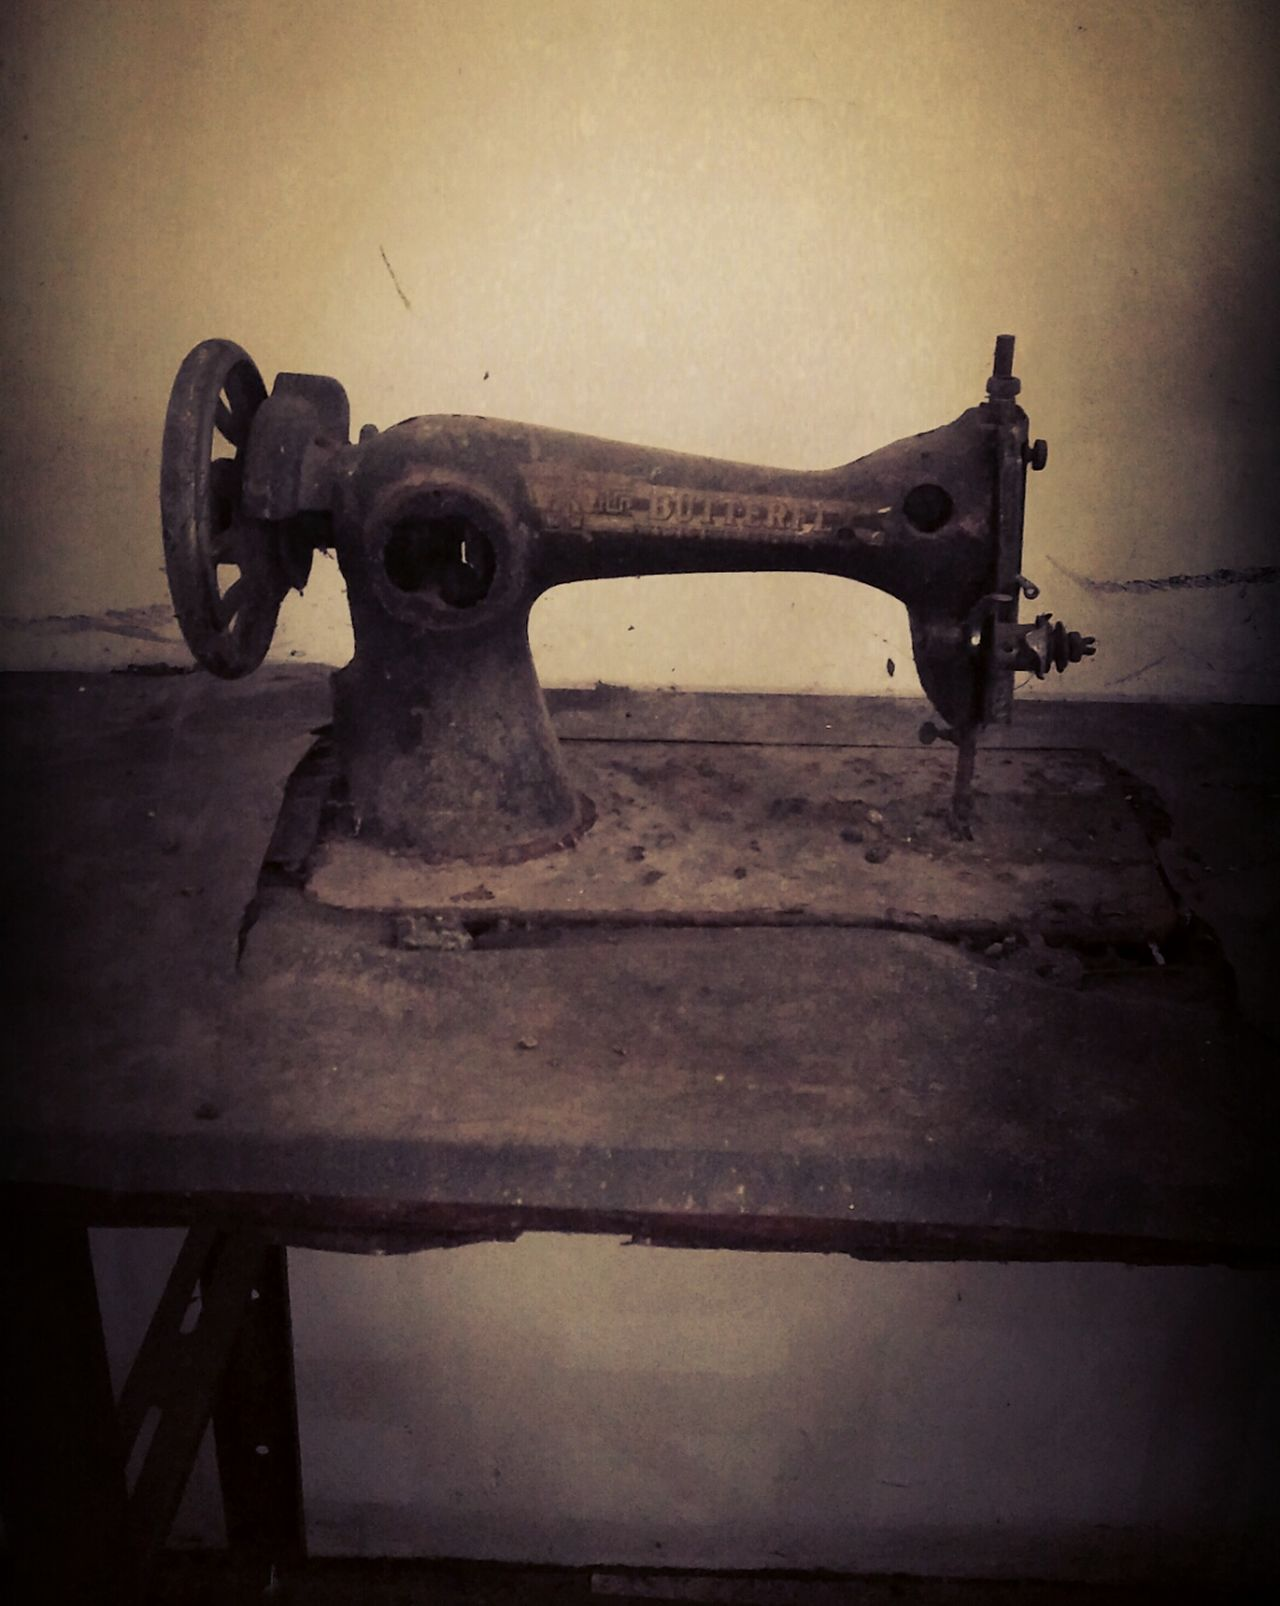 Old-fashioned Antique Machine Machine Tool Machine Part No People Fashion Machine Metal Industry Sculpture Industrial Photoseller Sell Forsalephoto Sellphotos Sellphoto Forsale Selling Photos